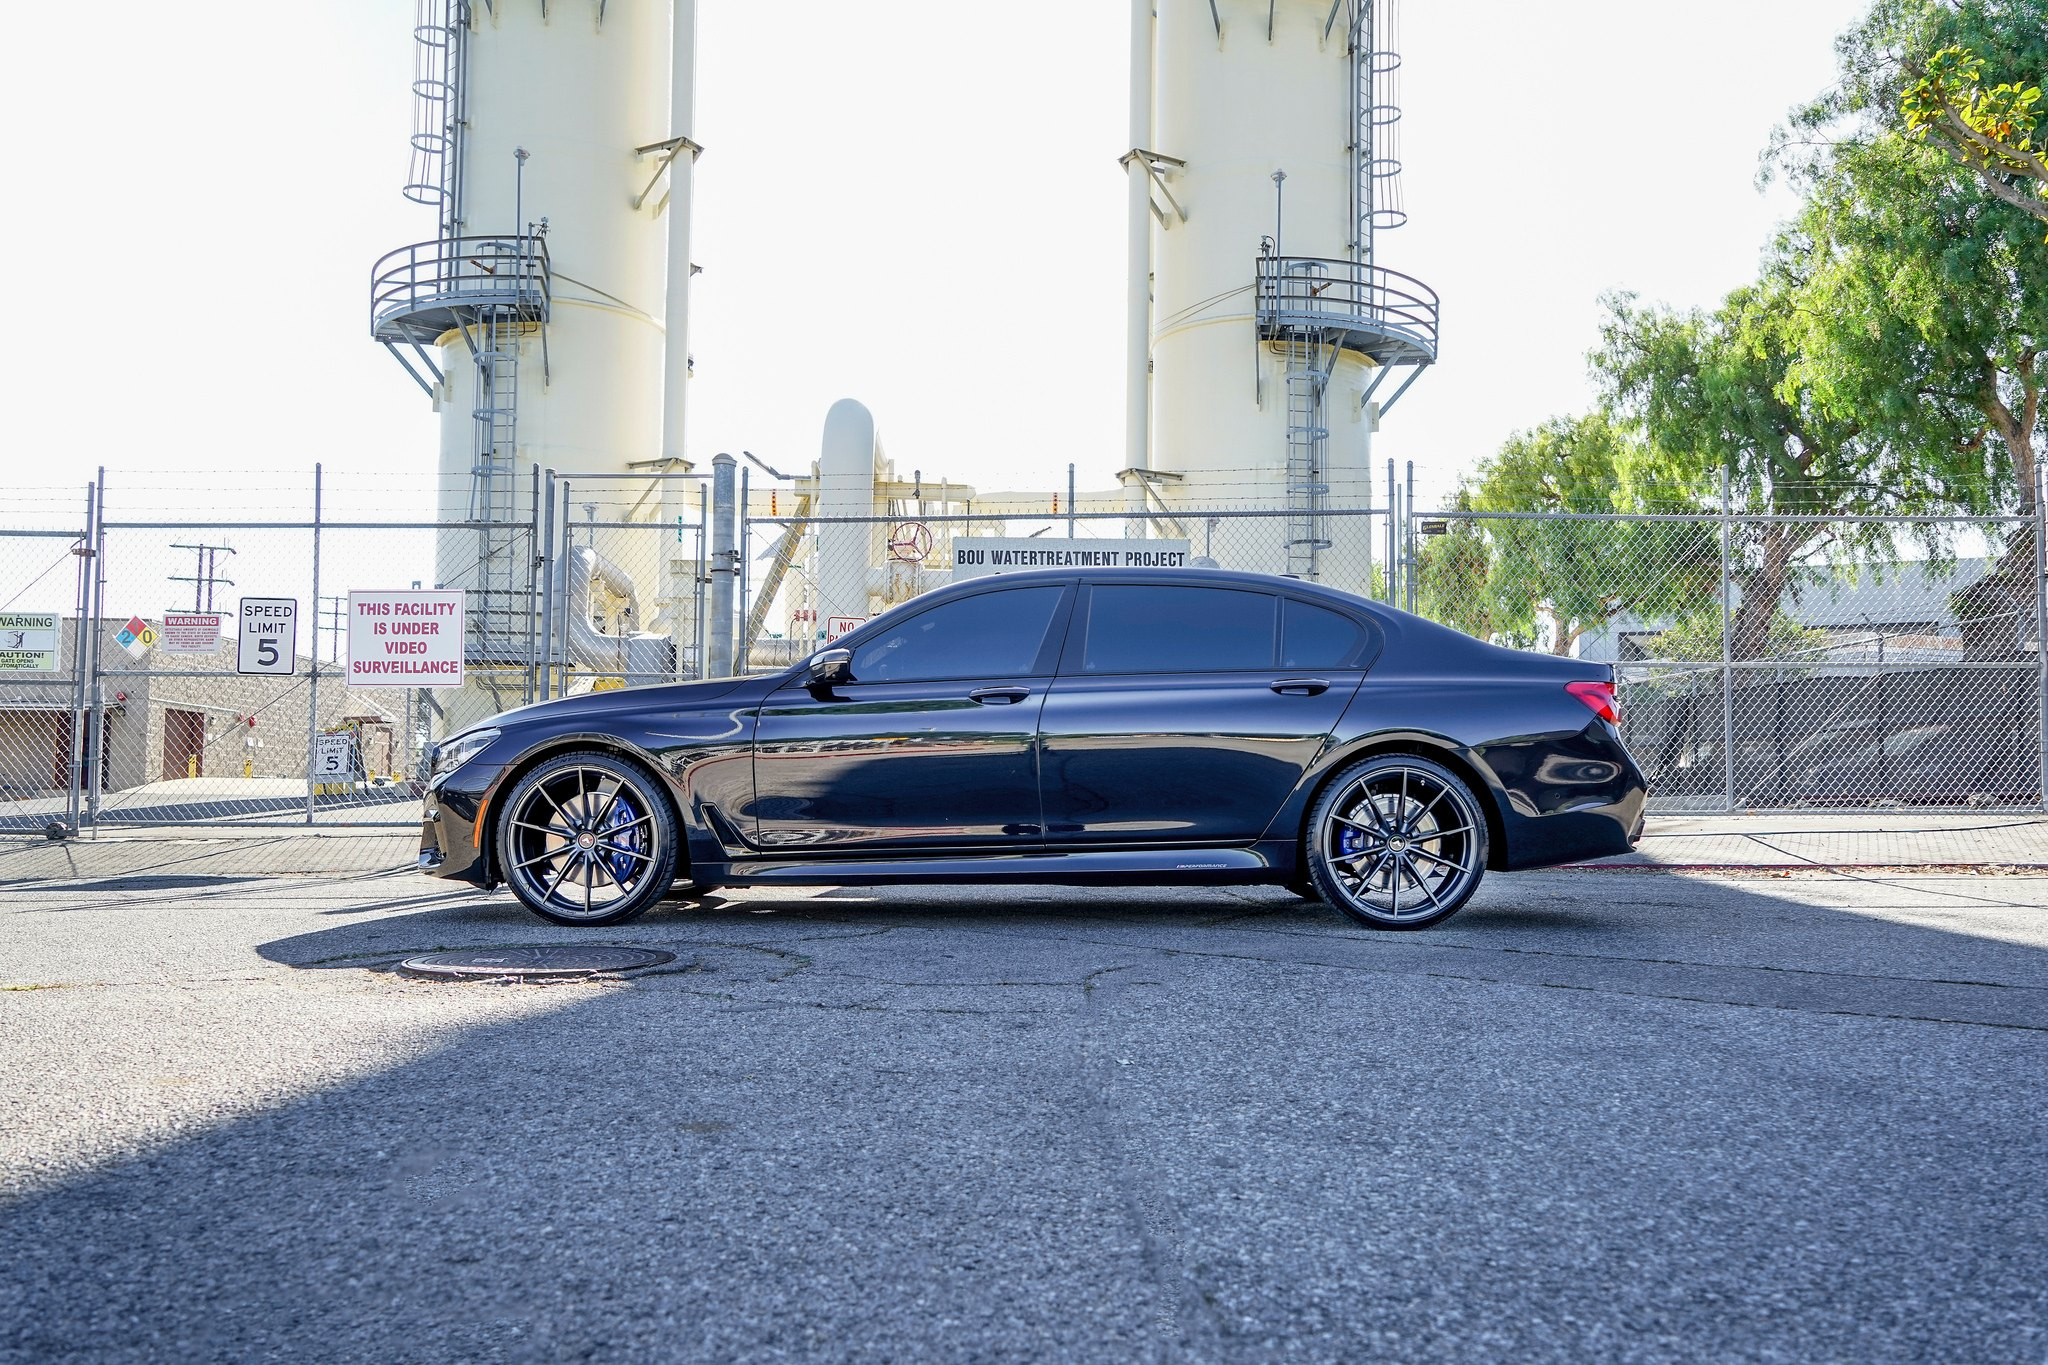 BMW 7-Series Looks Exactly as Aggressive as It Should